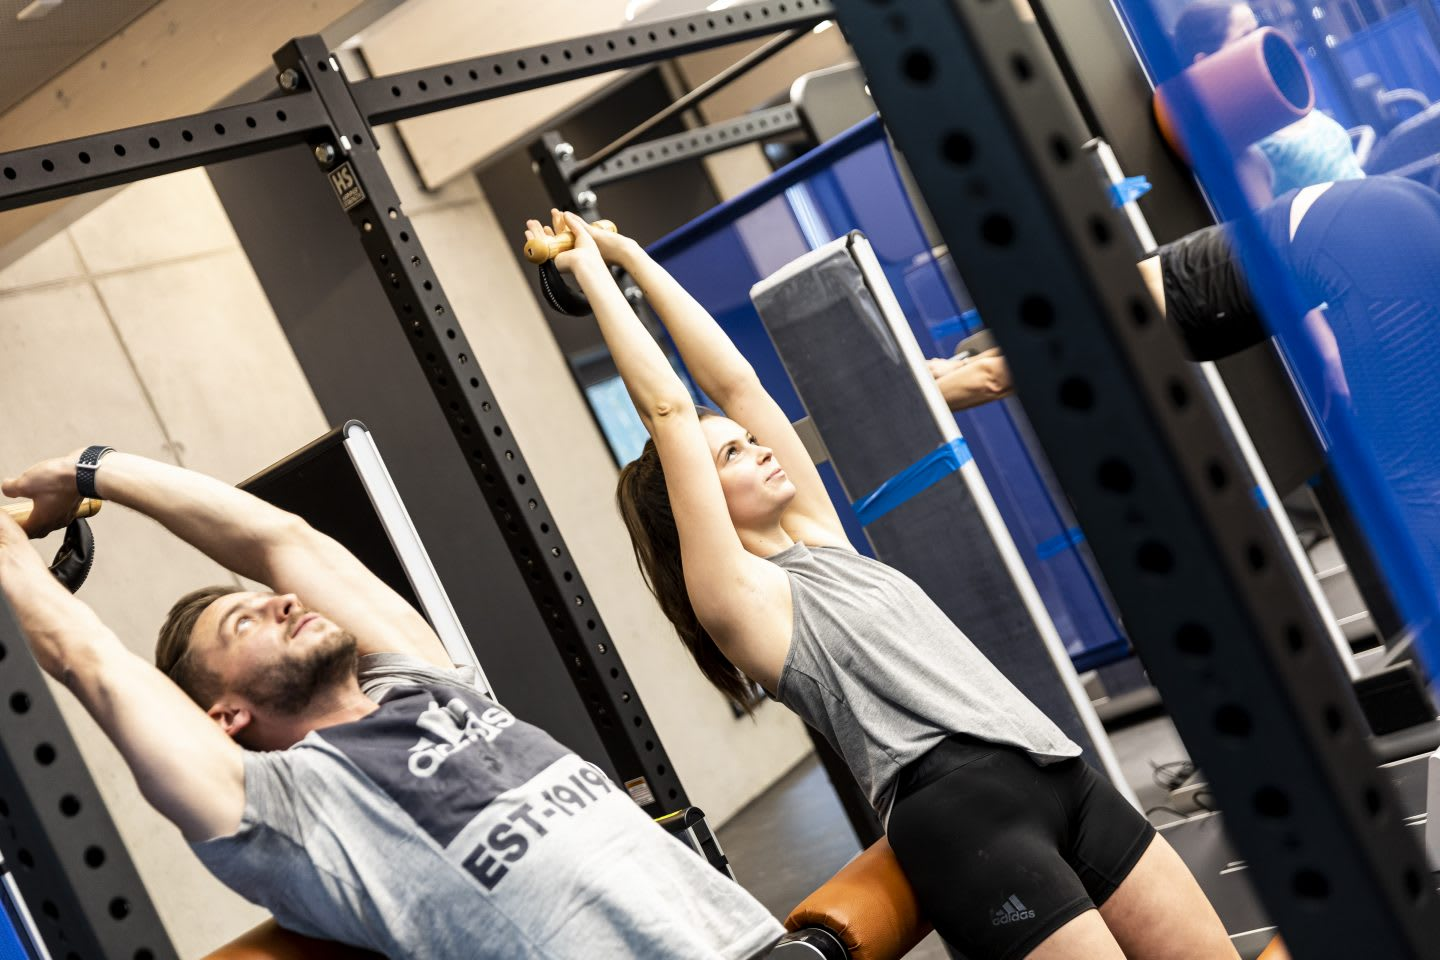 Man and woman using workout equipment while exercising during a workout class at a gym, GYM, Herzogenaurach, adidas, employees, workplace, fitness. sports, culture, active, health, lifestyle